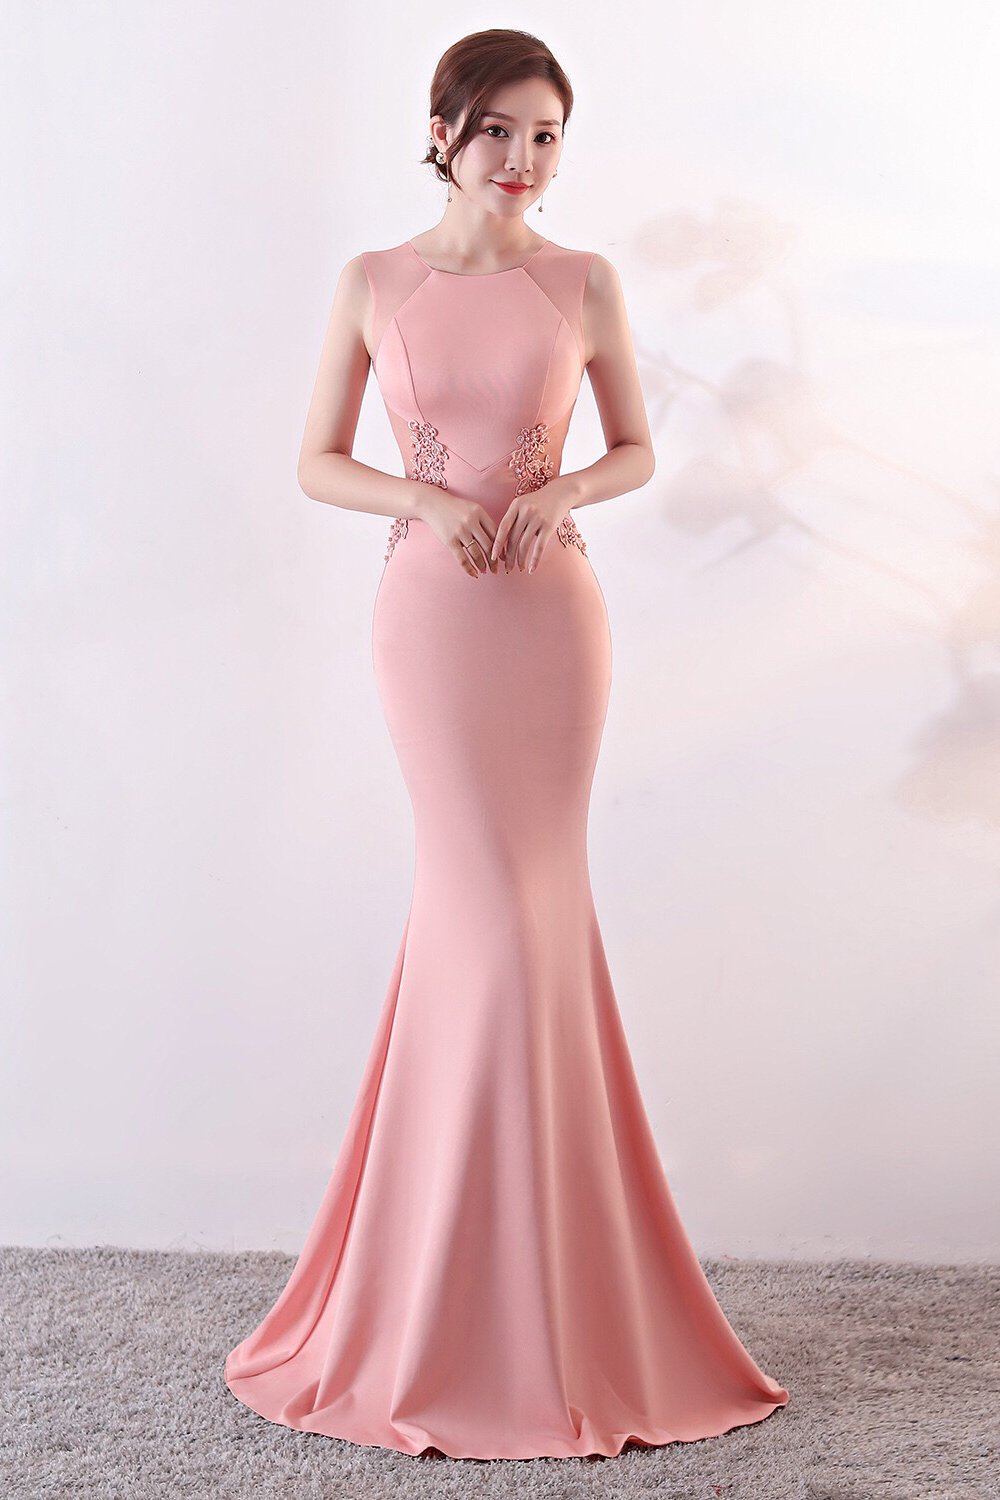 latest selection of 2019 sneakers for cheap well known [MTO] Elegant Simple Bodycon Evening Dress - Light Pink